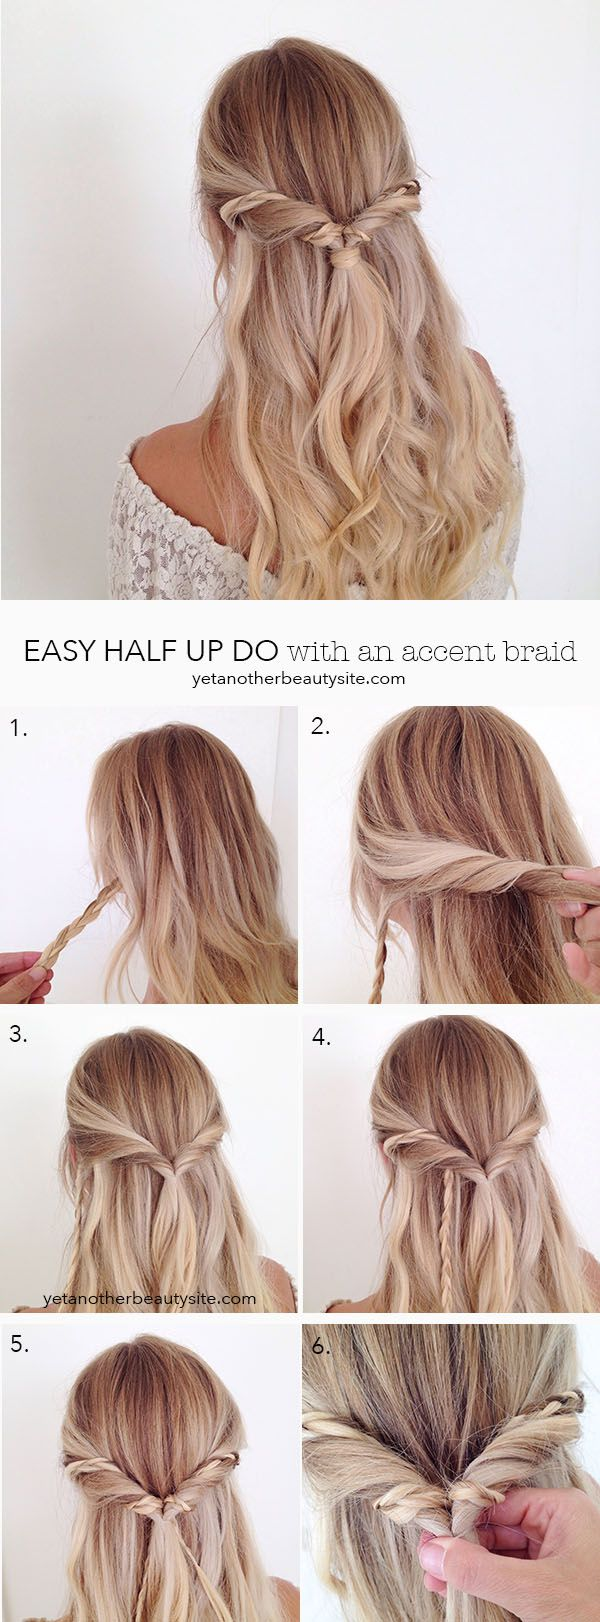 Best Hair Images On Pinterest Hair Ideas Hairstyle Ideas - Braid diy pinterest